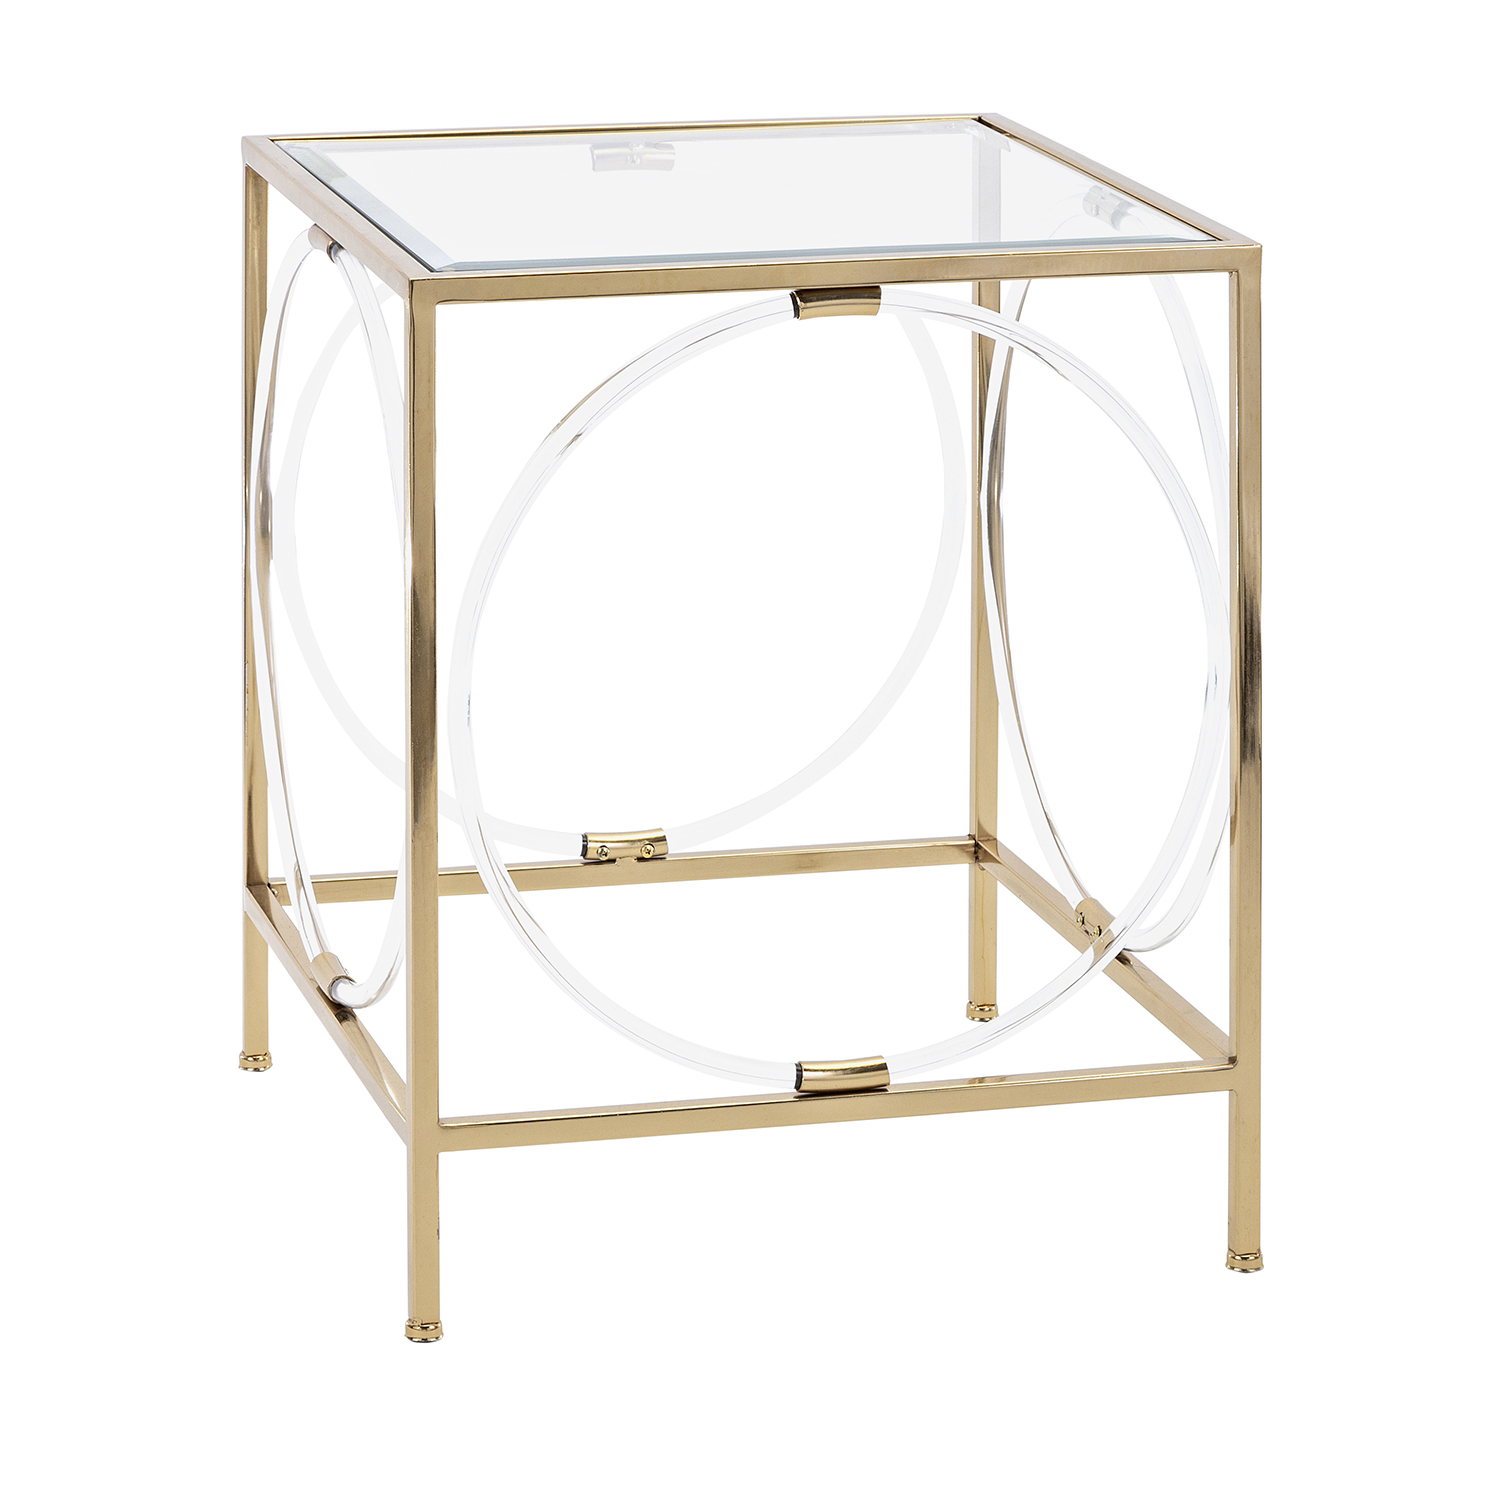 imax rouvin gold acrylic glass accent table bellacor wood and metal nesting tables wrought iron patio furniture legs modern wooden grill round oak end storage for small spaces